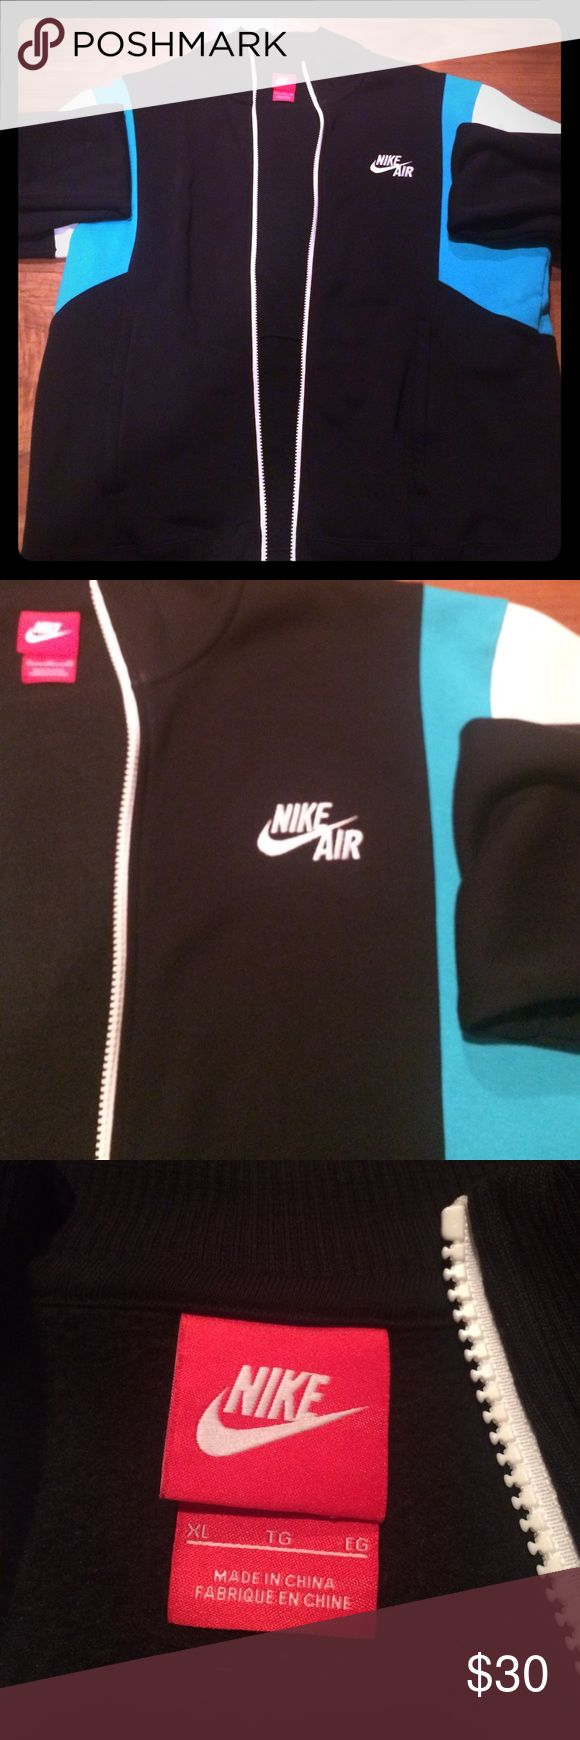 Nike Air Black/White/Blue Jacket Black/White/Blue authentic Nike Air jacket, slightly worn but in great condition! Size Men's XL, the perfect Christmas gift for any baller out there in your life! Nike Jackets & Coats Lightweight & Shirt Jackets